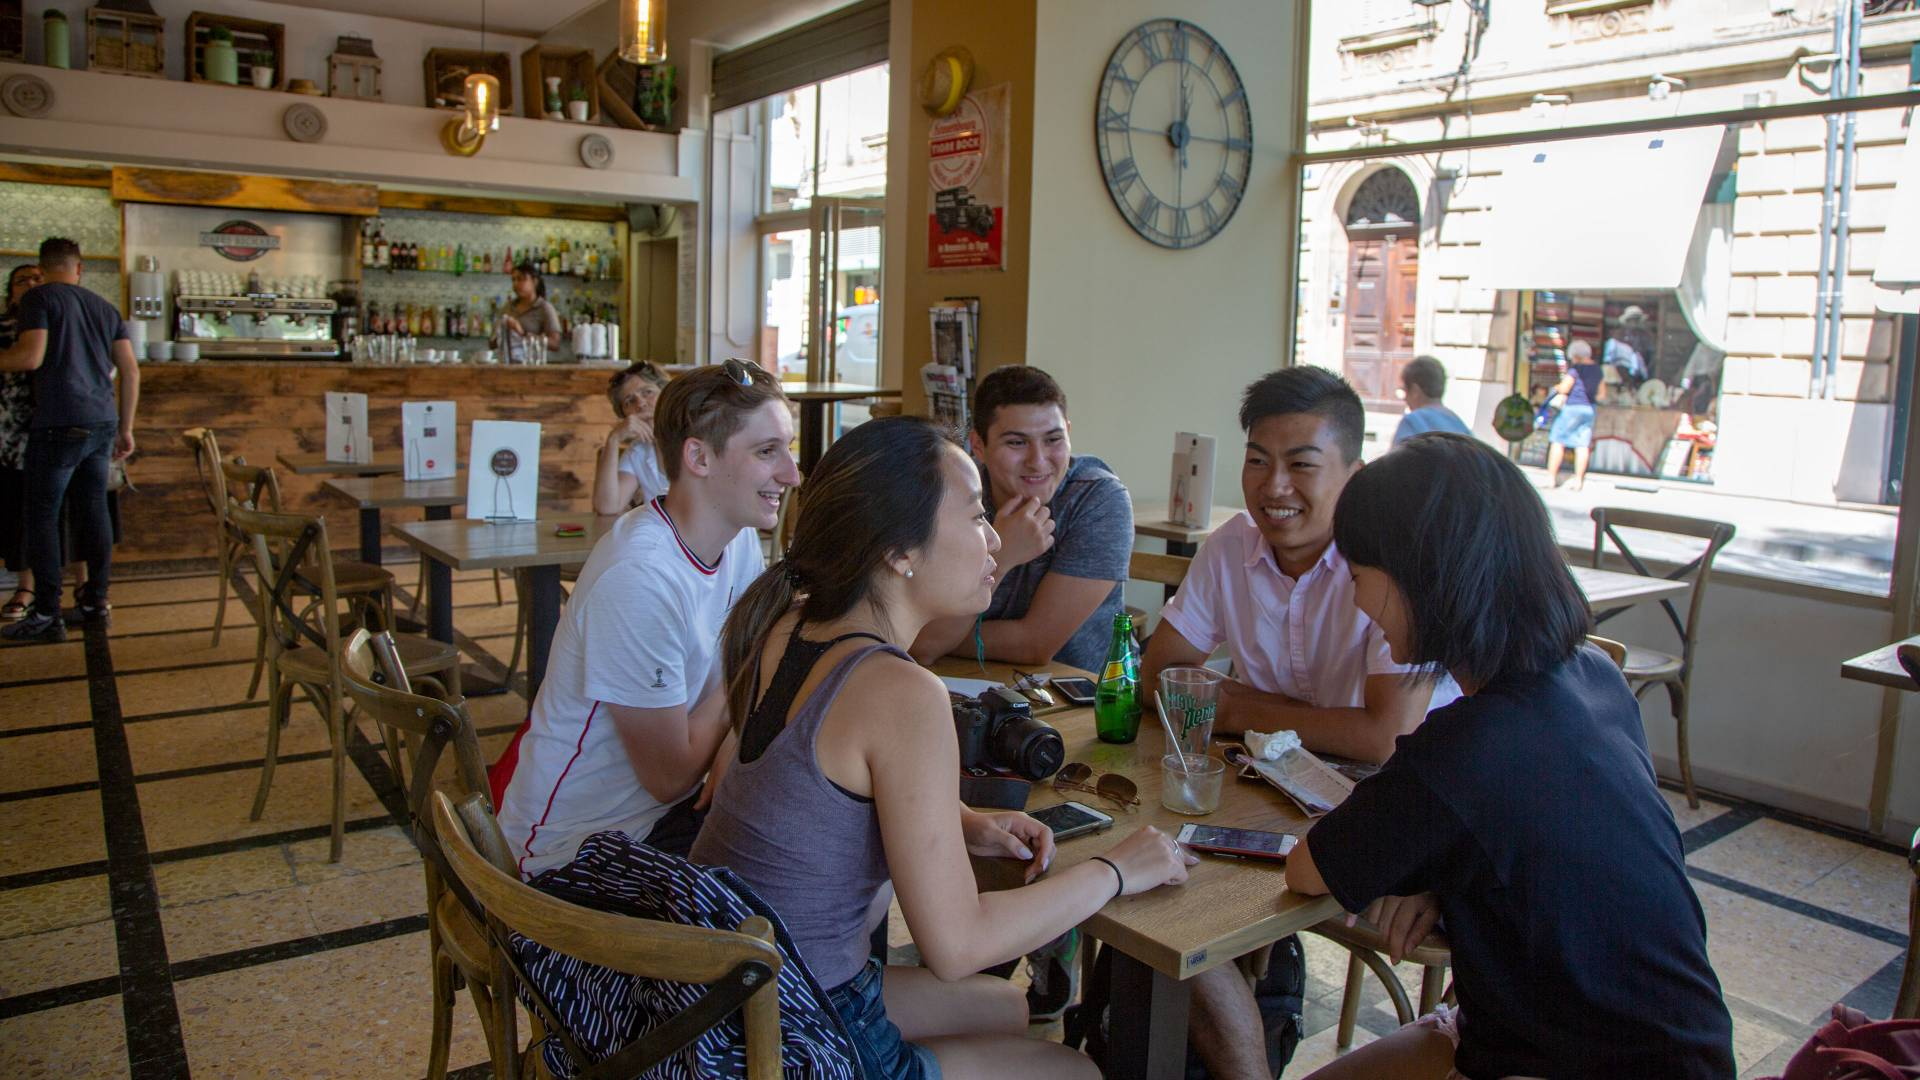 Students eating at a cafe in Arles, France